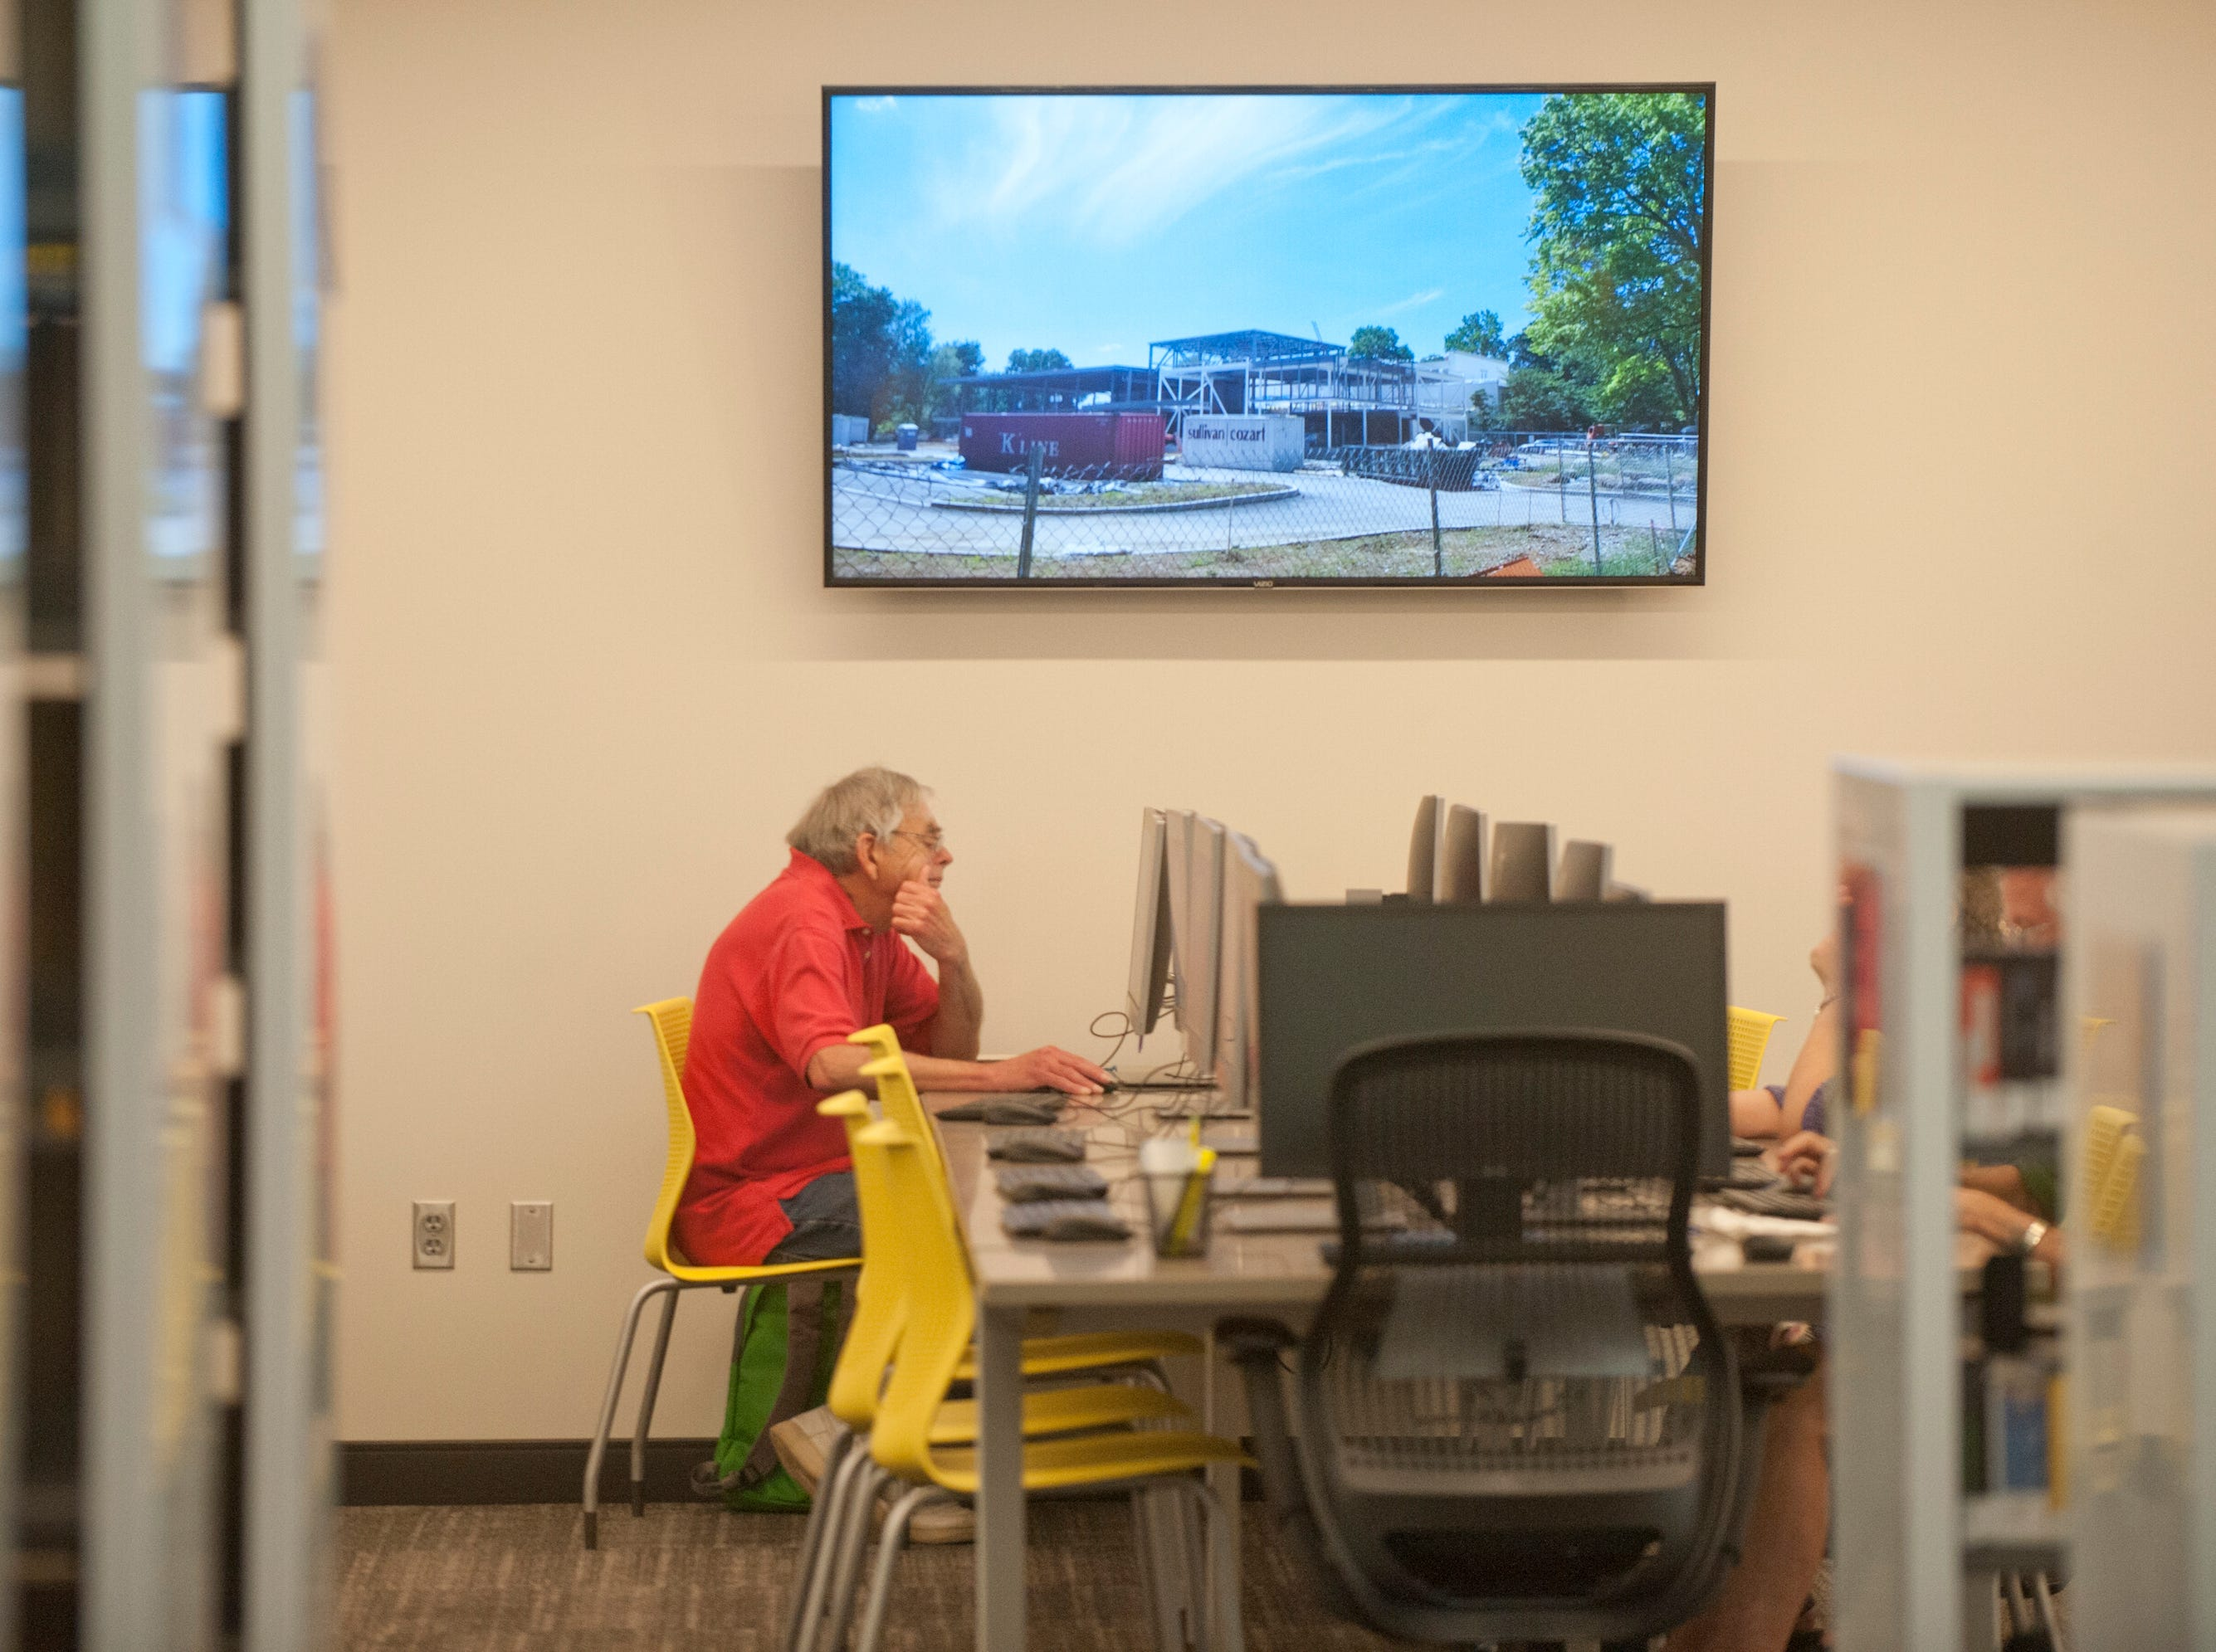 Rae Taylor, of Richlawn, works at a library computer in the public's computer area of the newly expanded library. Above him is an image of the library when it was under construction. May 9, 2019